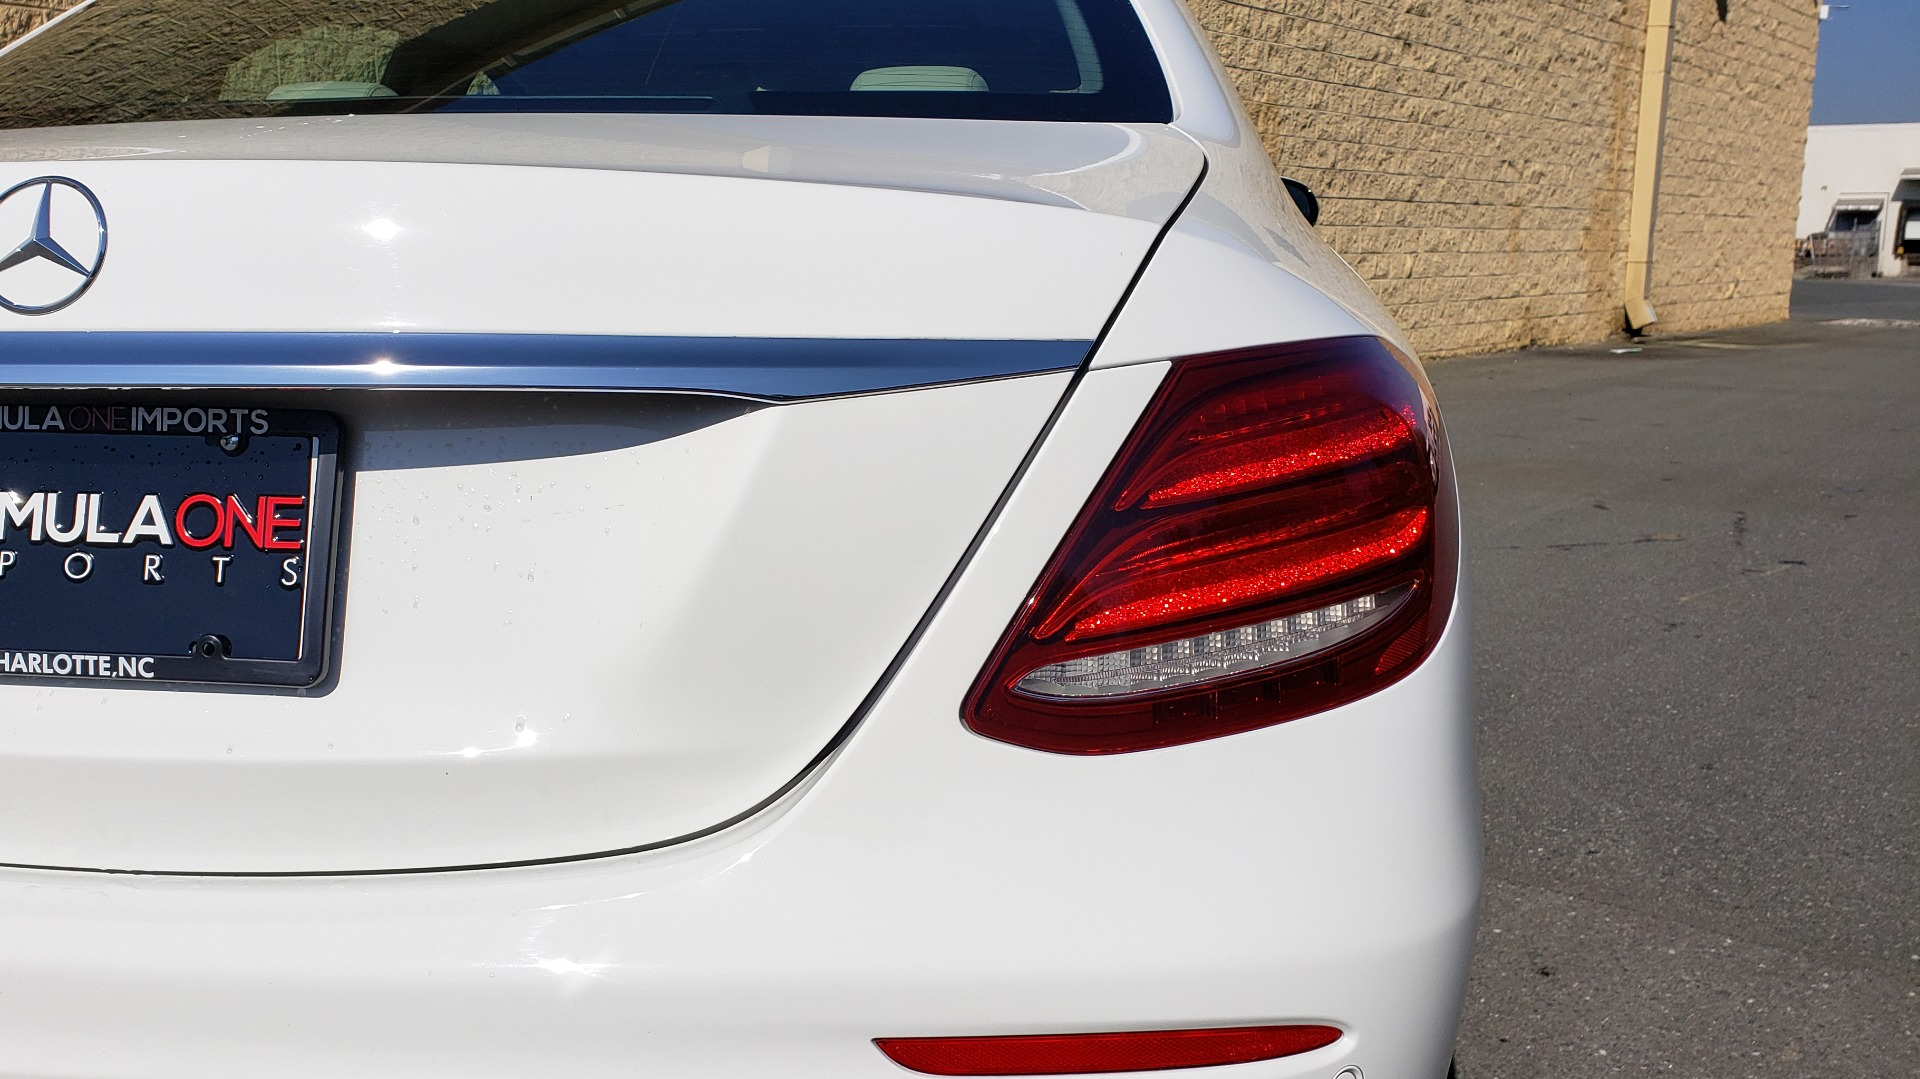 Used 2017 Mercedes-Benz E-Class E 300 PREMIUM / RWD / NAV / SNF / PARKING PILOT / REARVIEW / BURMESTER for sale Sold at Formula Imports in Charlotte NC 28227 18